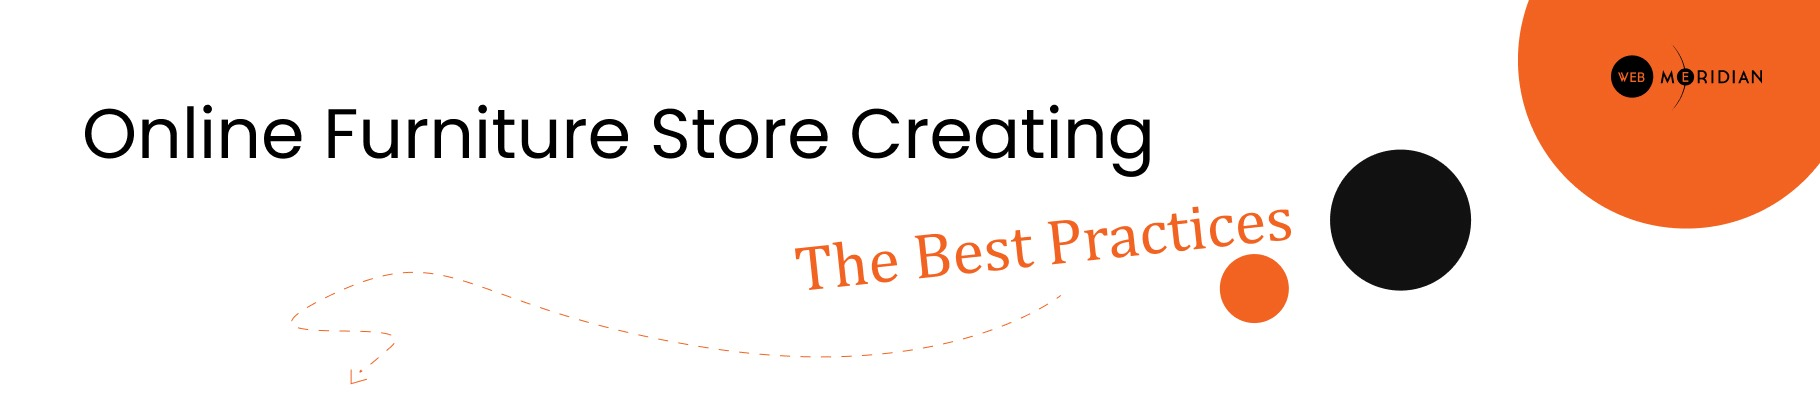 The Best Practices for Online Furniture Store Creating